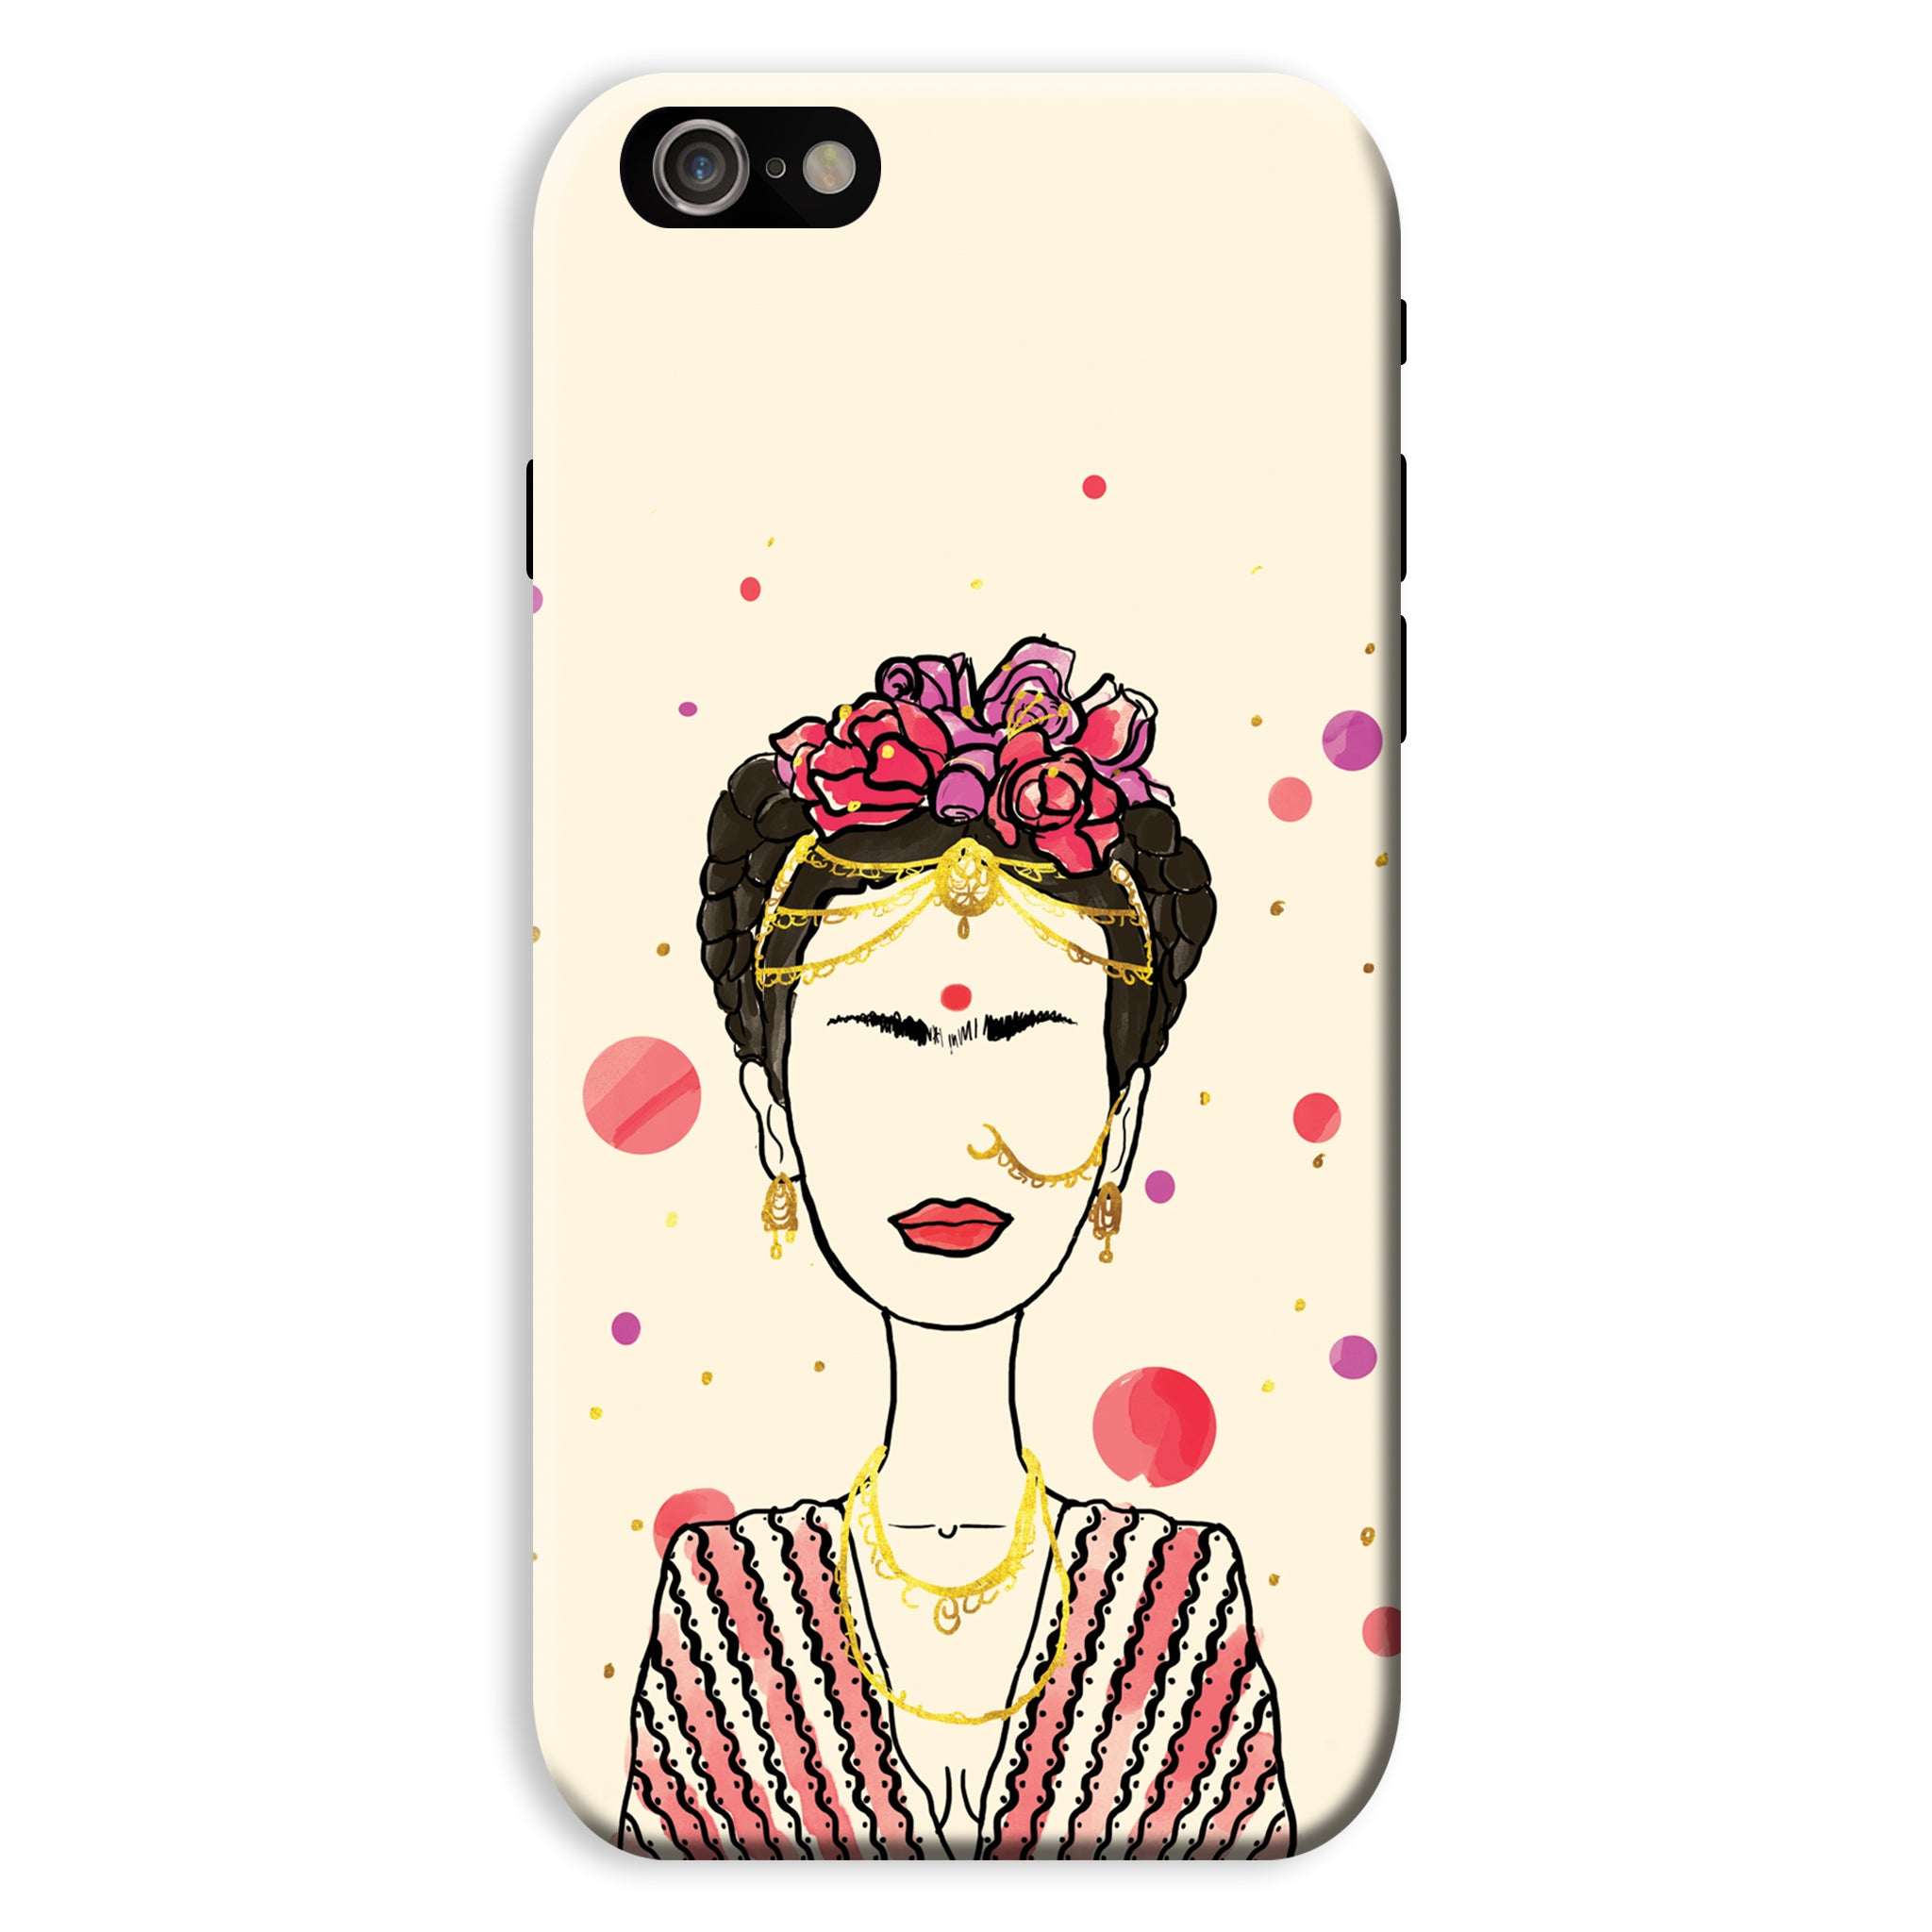 custodia frida kahlo iphone 6s